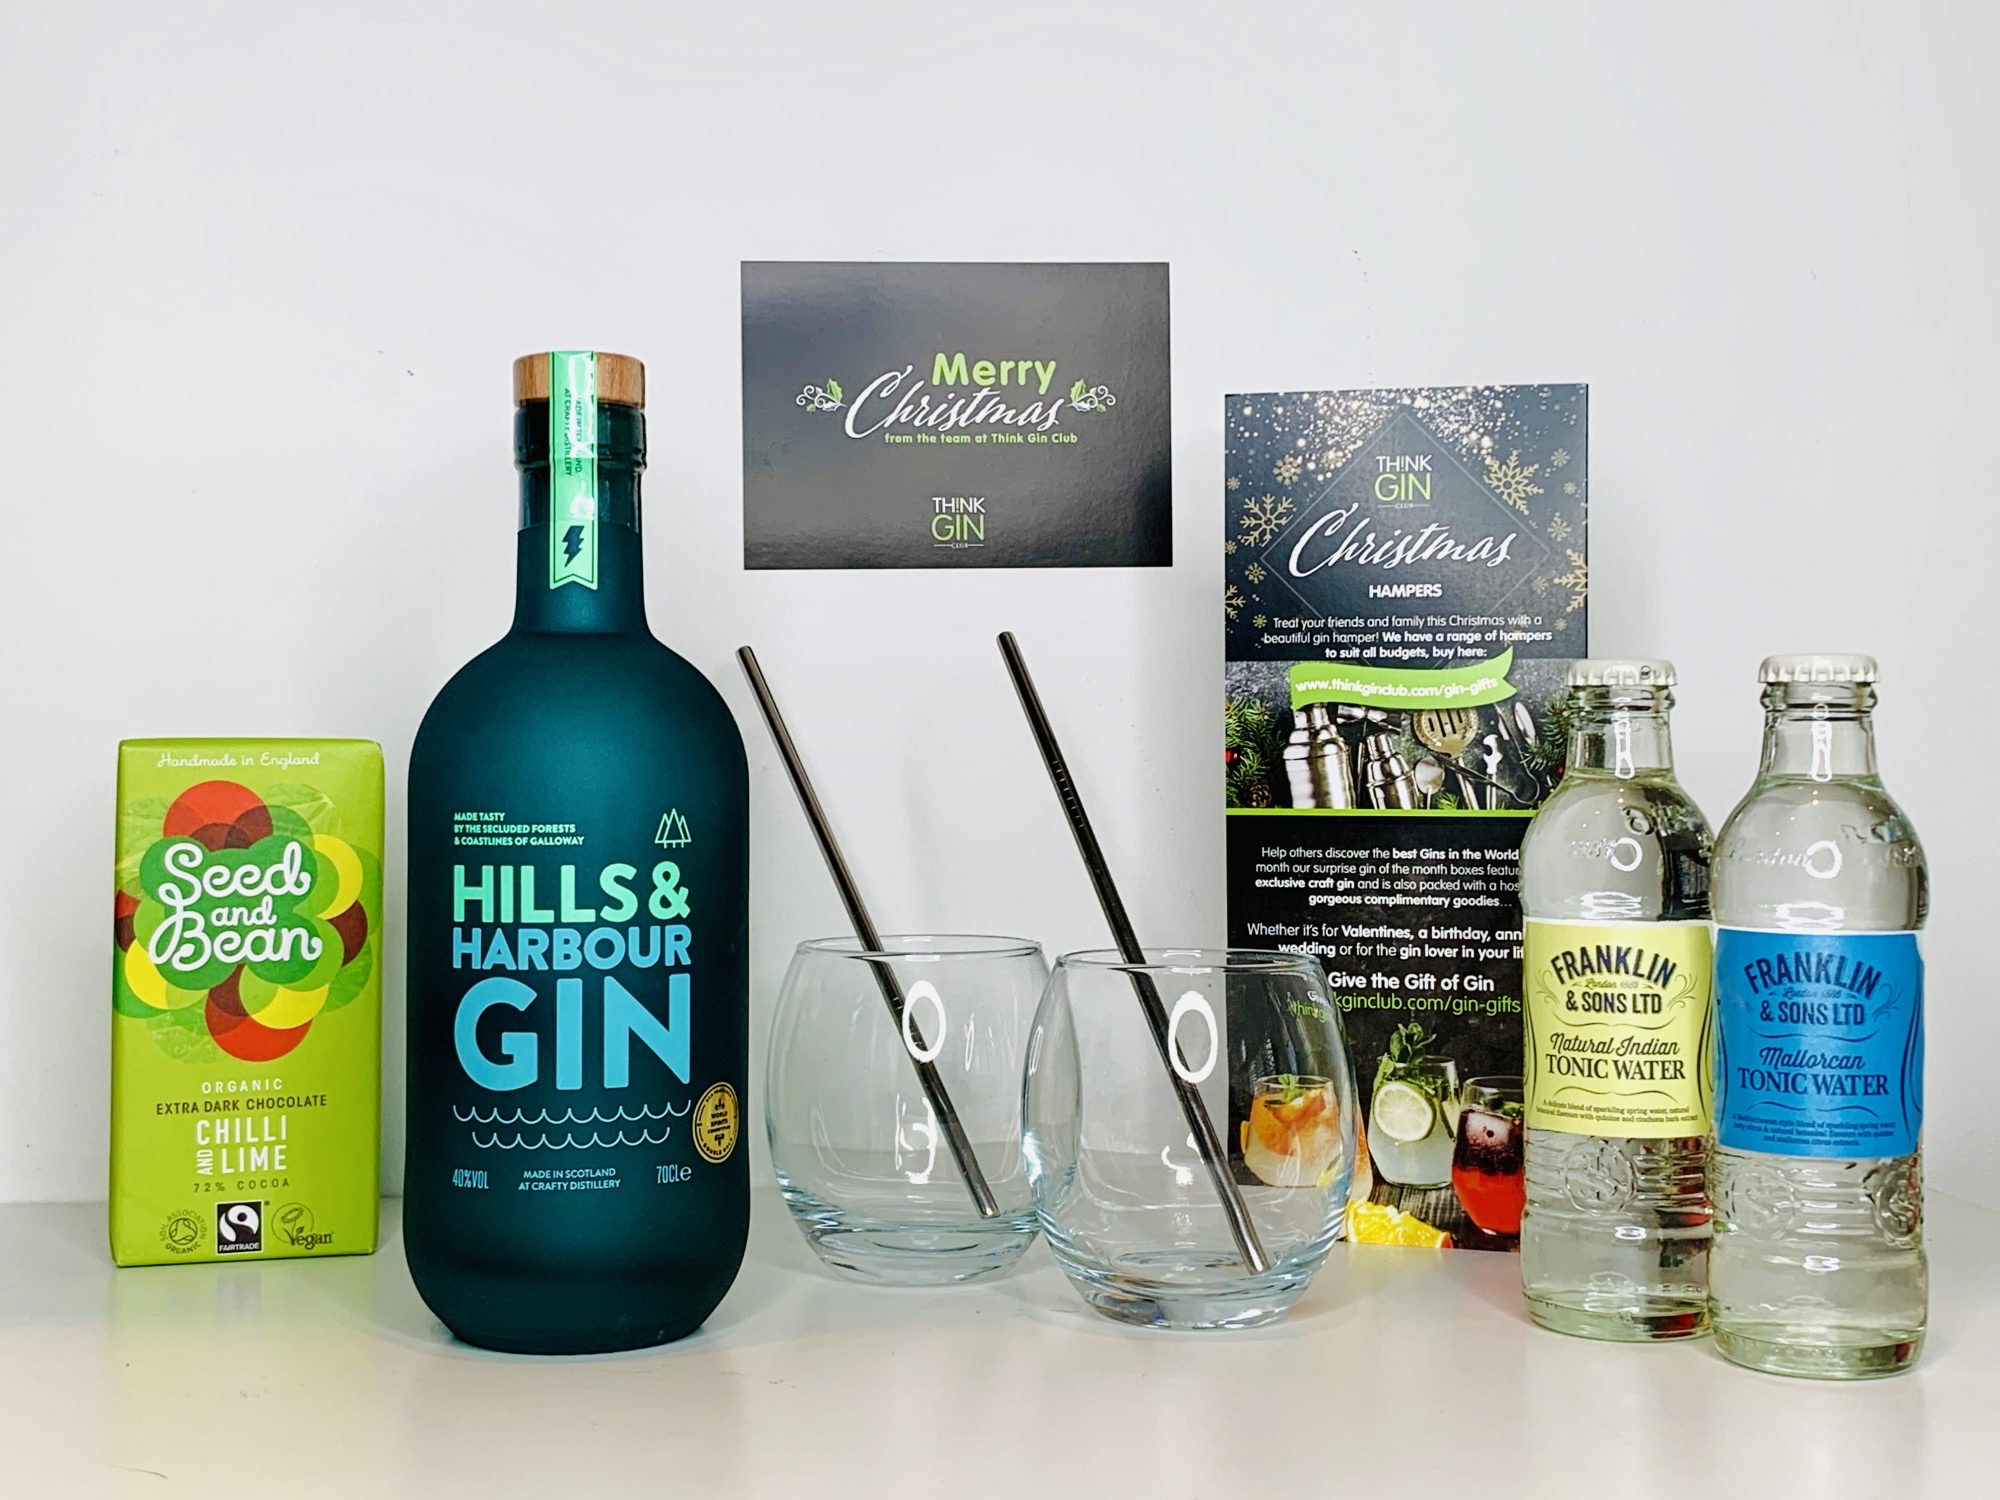 Gin Delivery in Time for Christmas